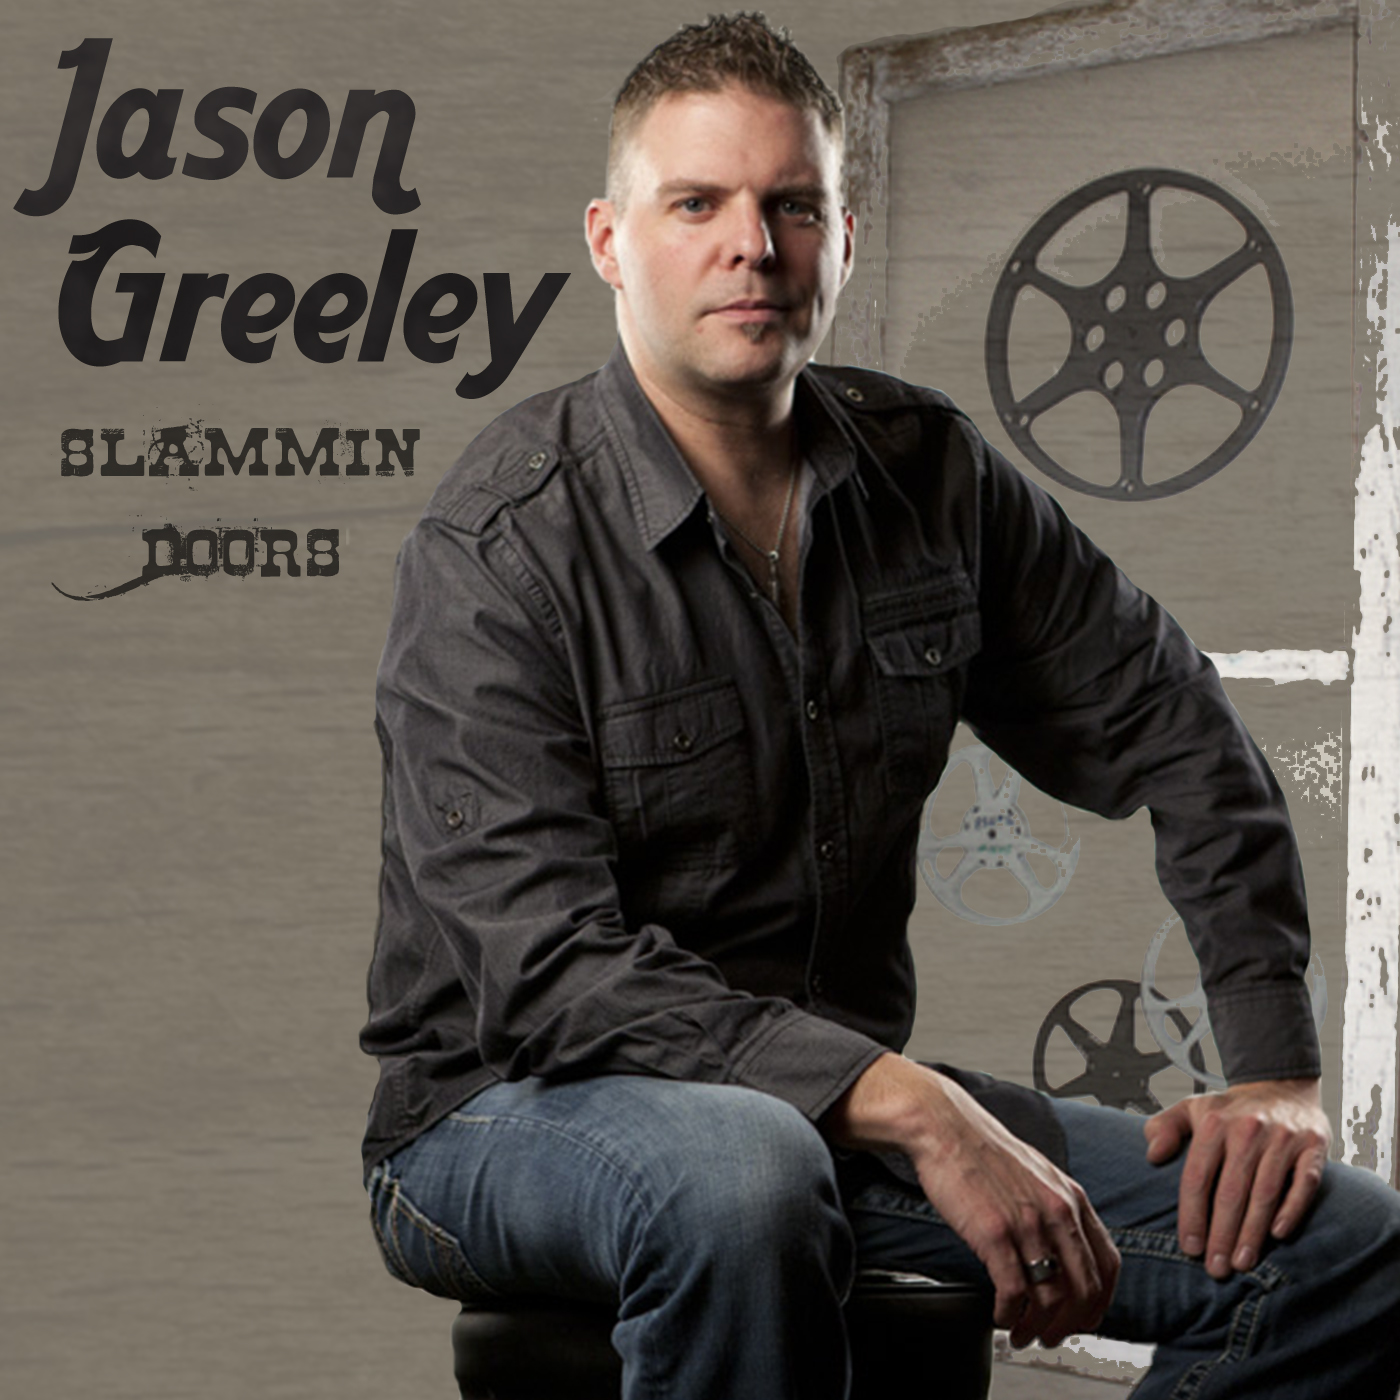 Jason Greeley Slammin Doors(1)